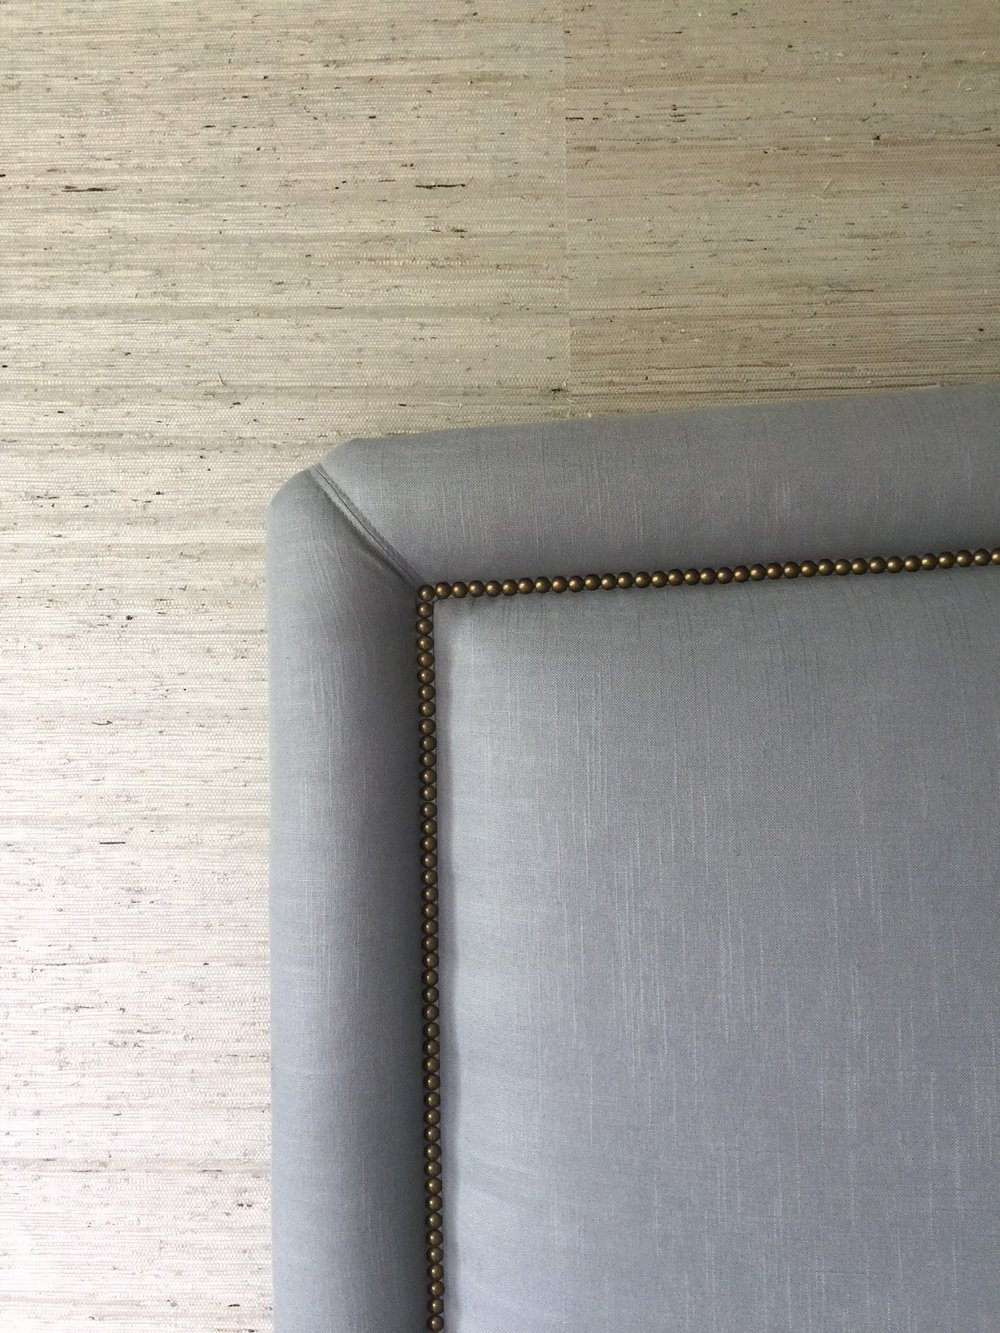 Upholstered headboard on grasscloth wall